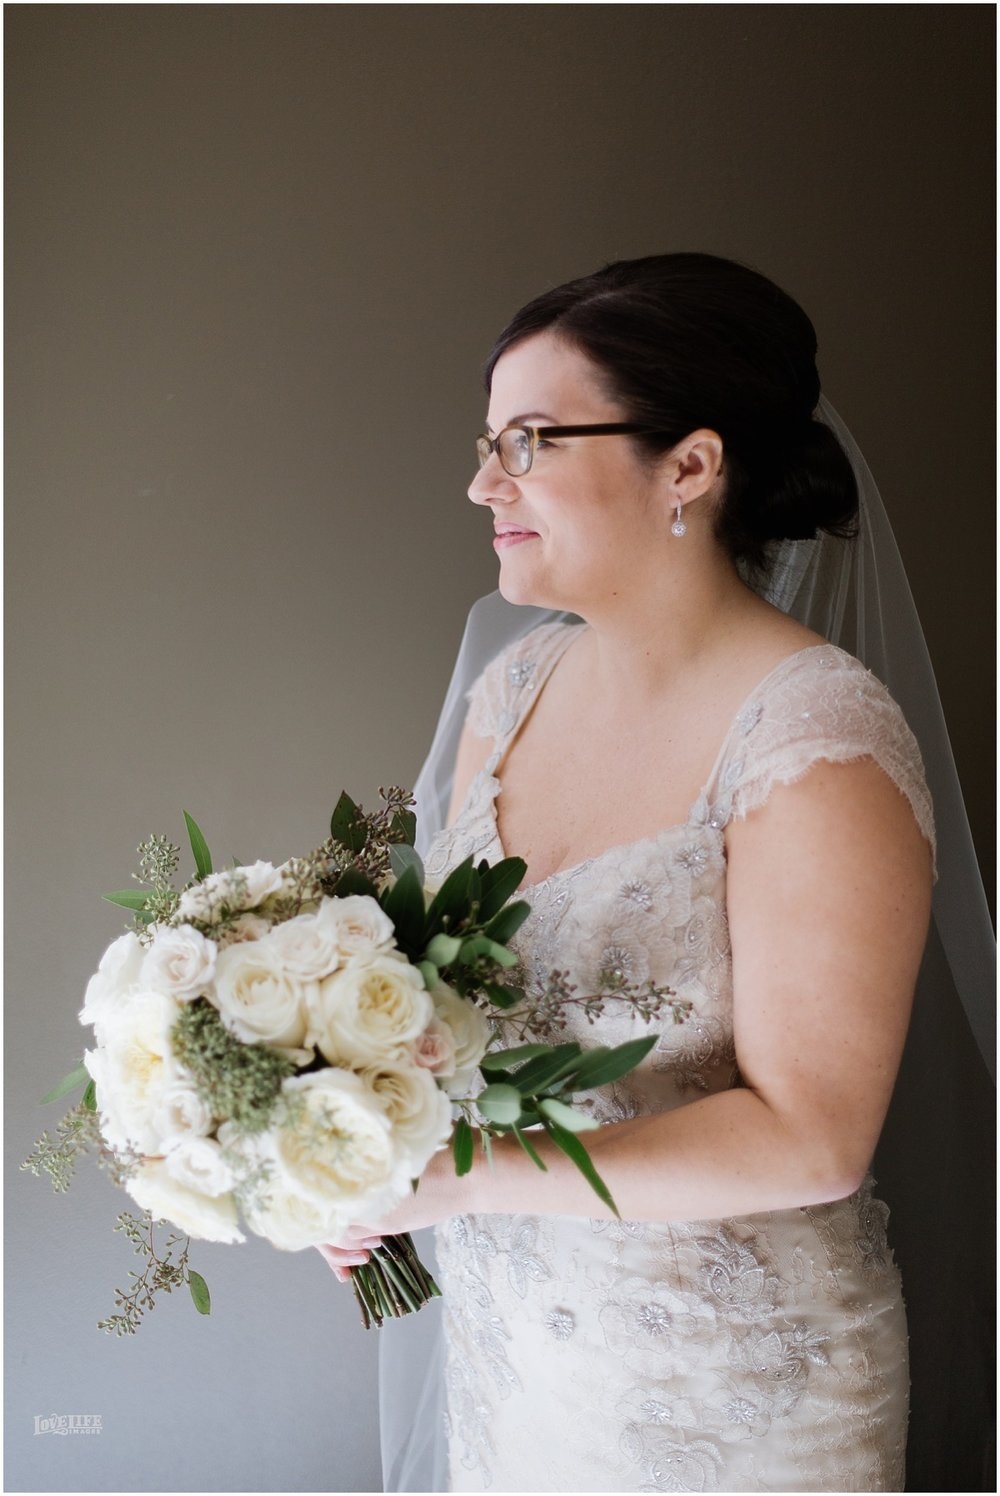 Dumbarton House wedding bride portrait with bouquet.JPG